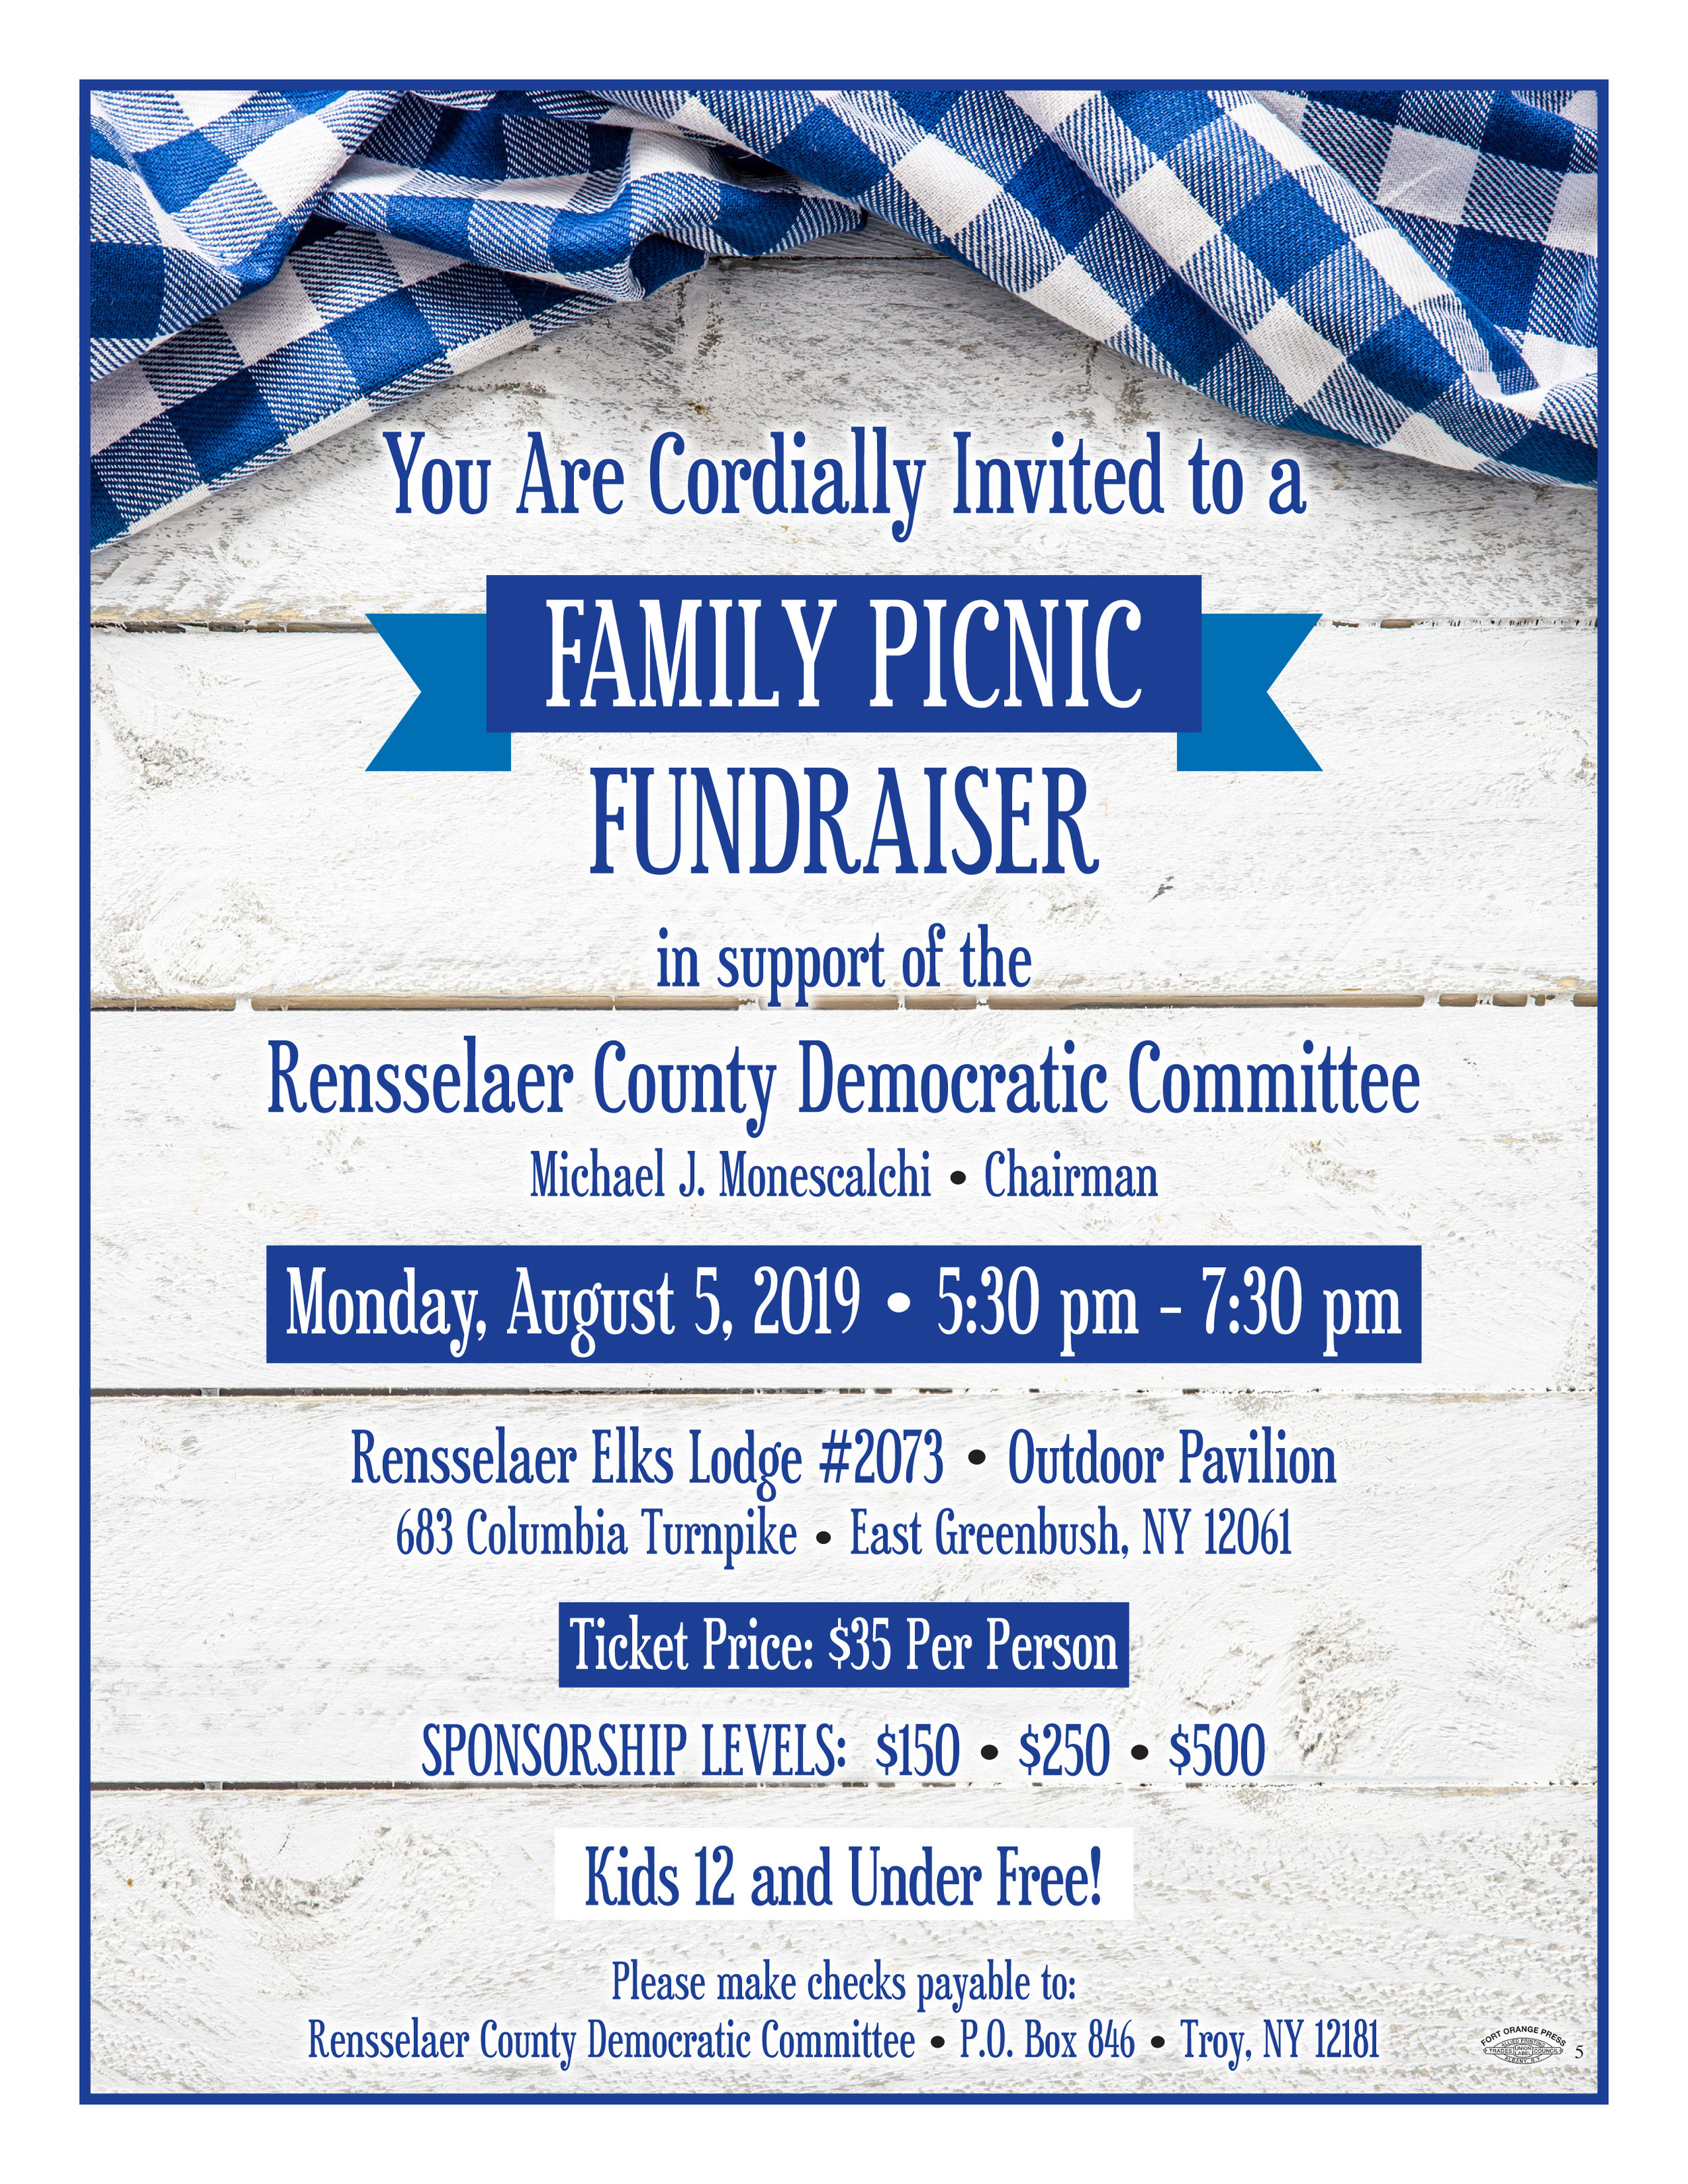 RCDC Family Picnic Fundraiser August 5 Invite.jpg